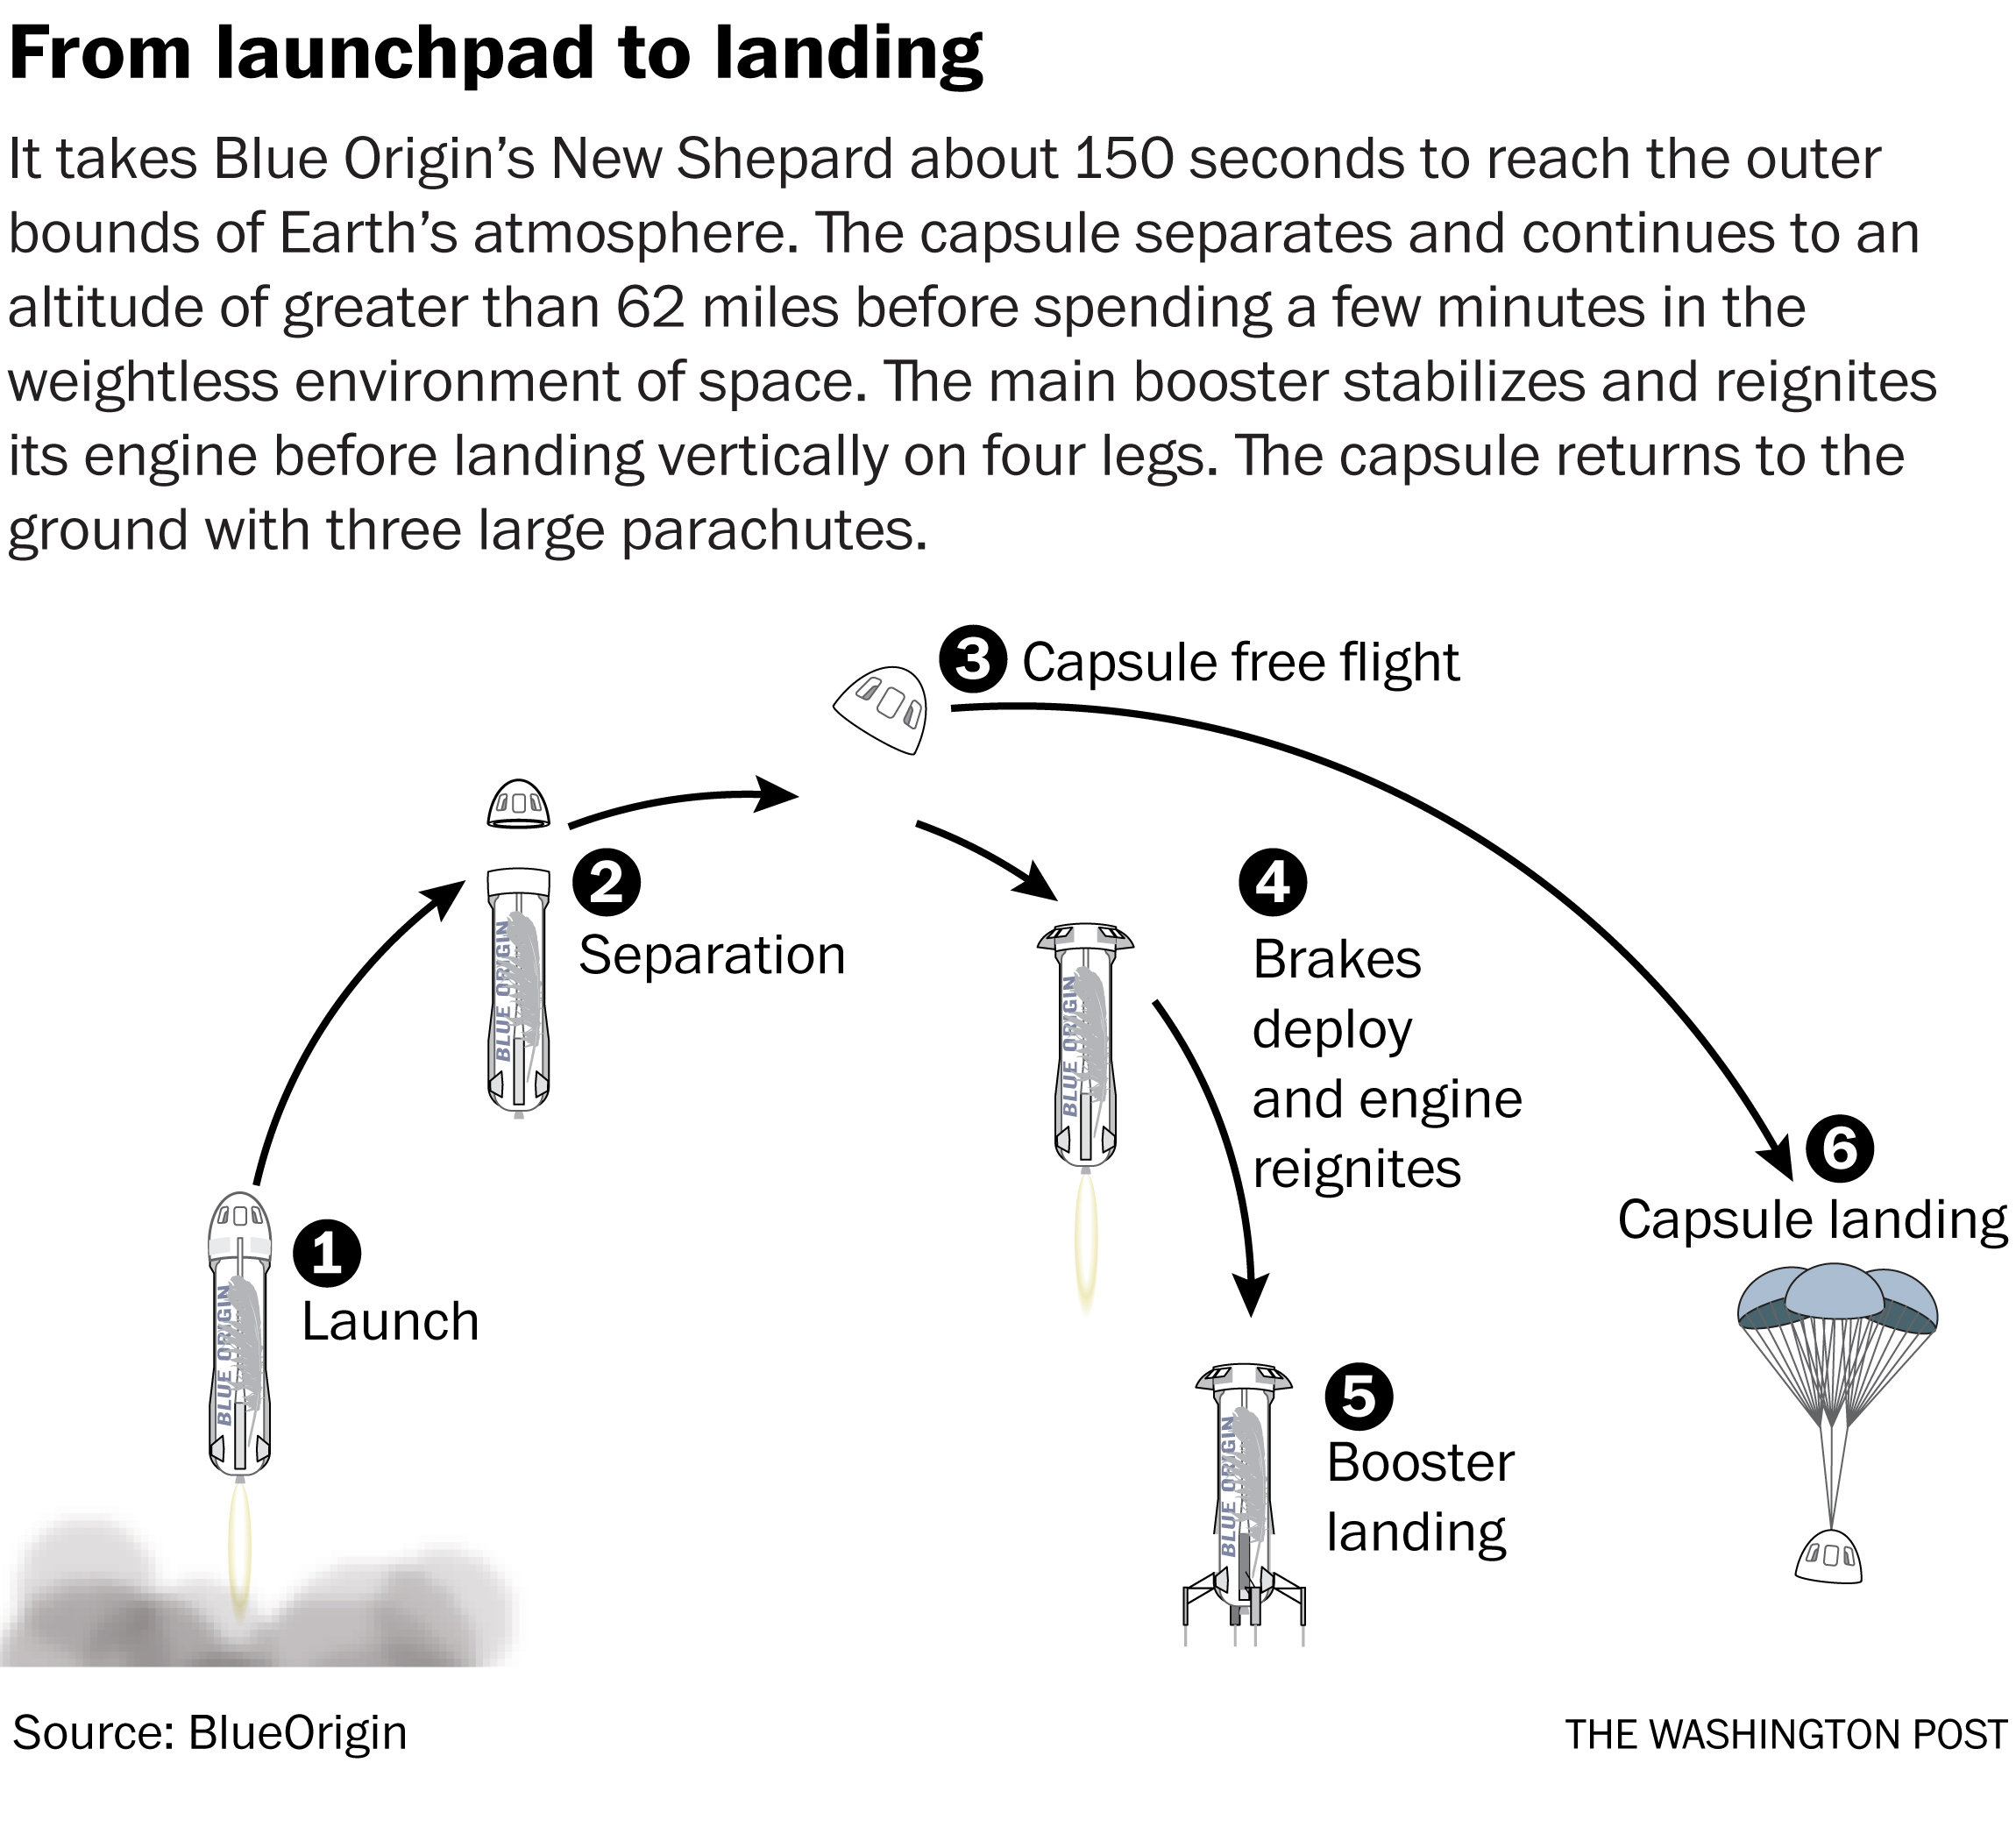 Jeff Bezos is going to space on Blue Origin's first crewed spaceflight in  July - The Washington Post